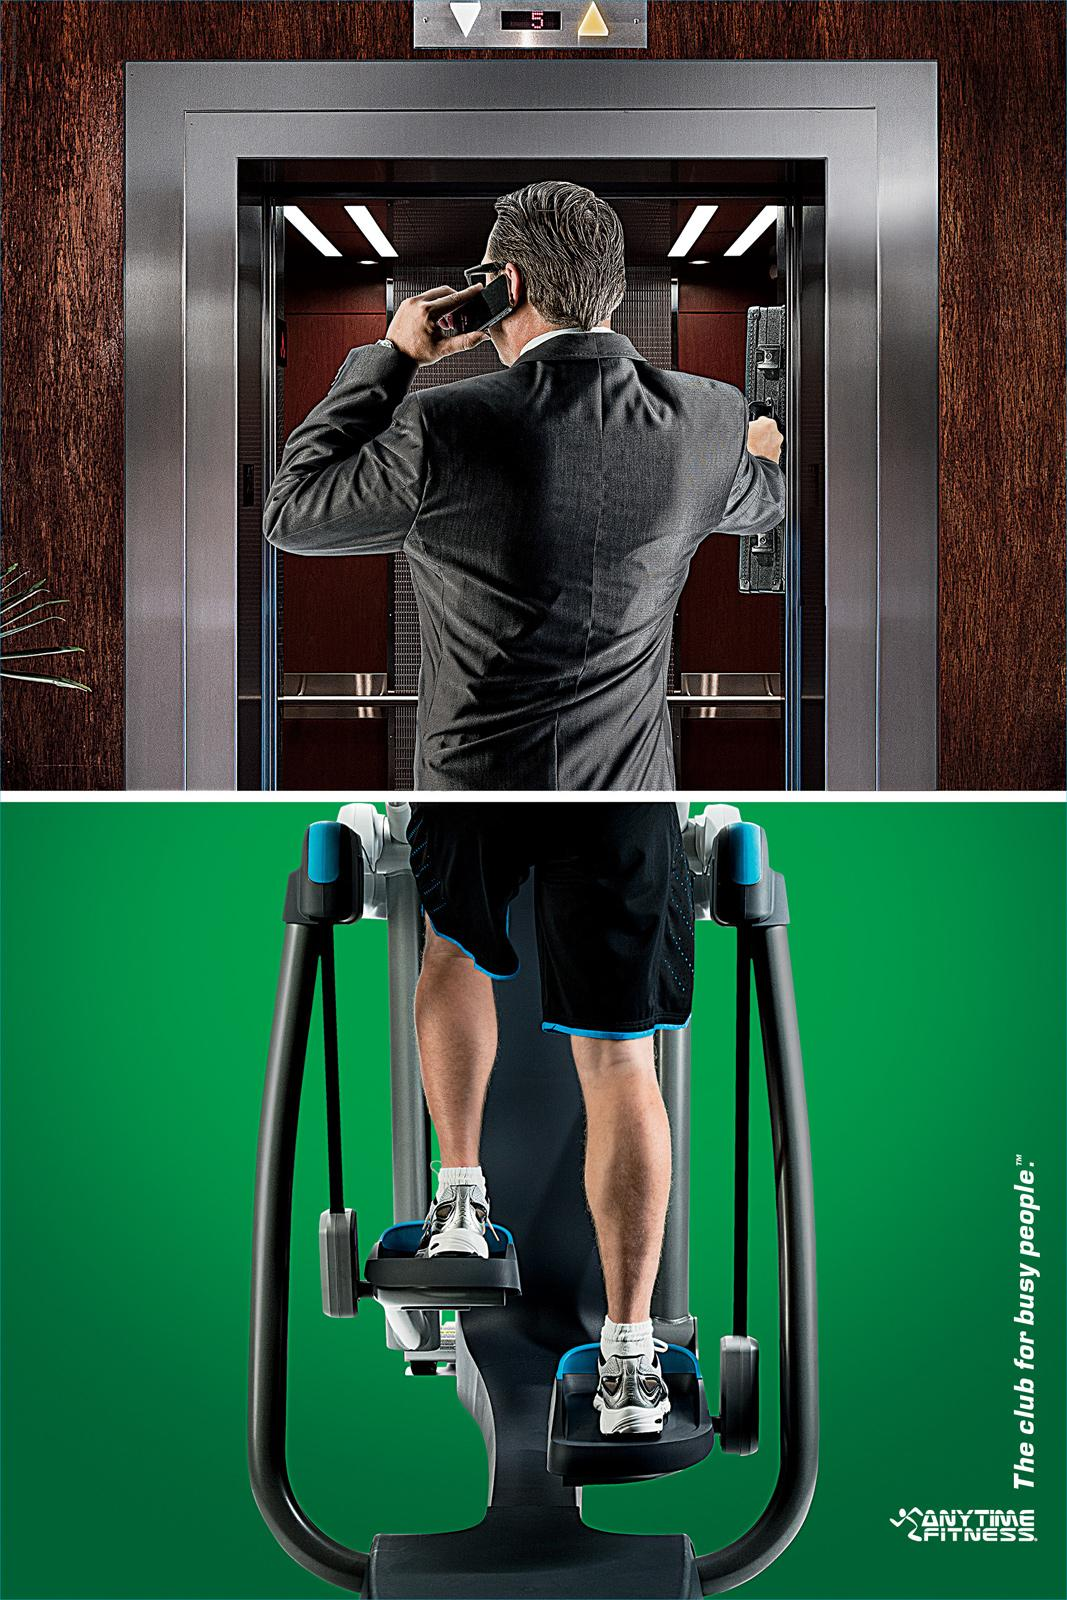 Anytime Fitness Print Ad -  Elevator